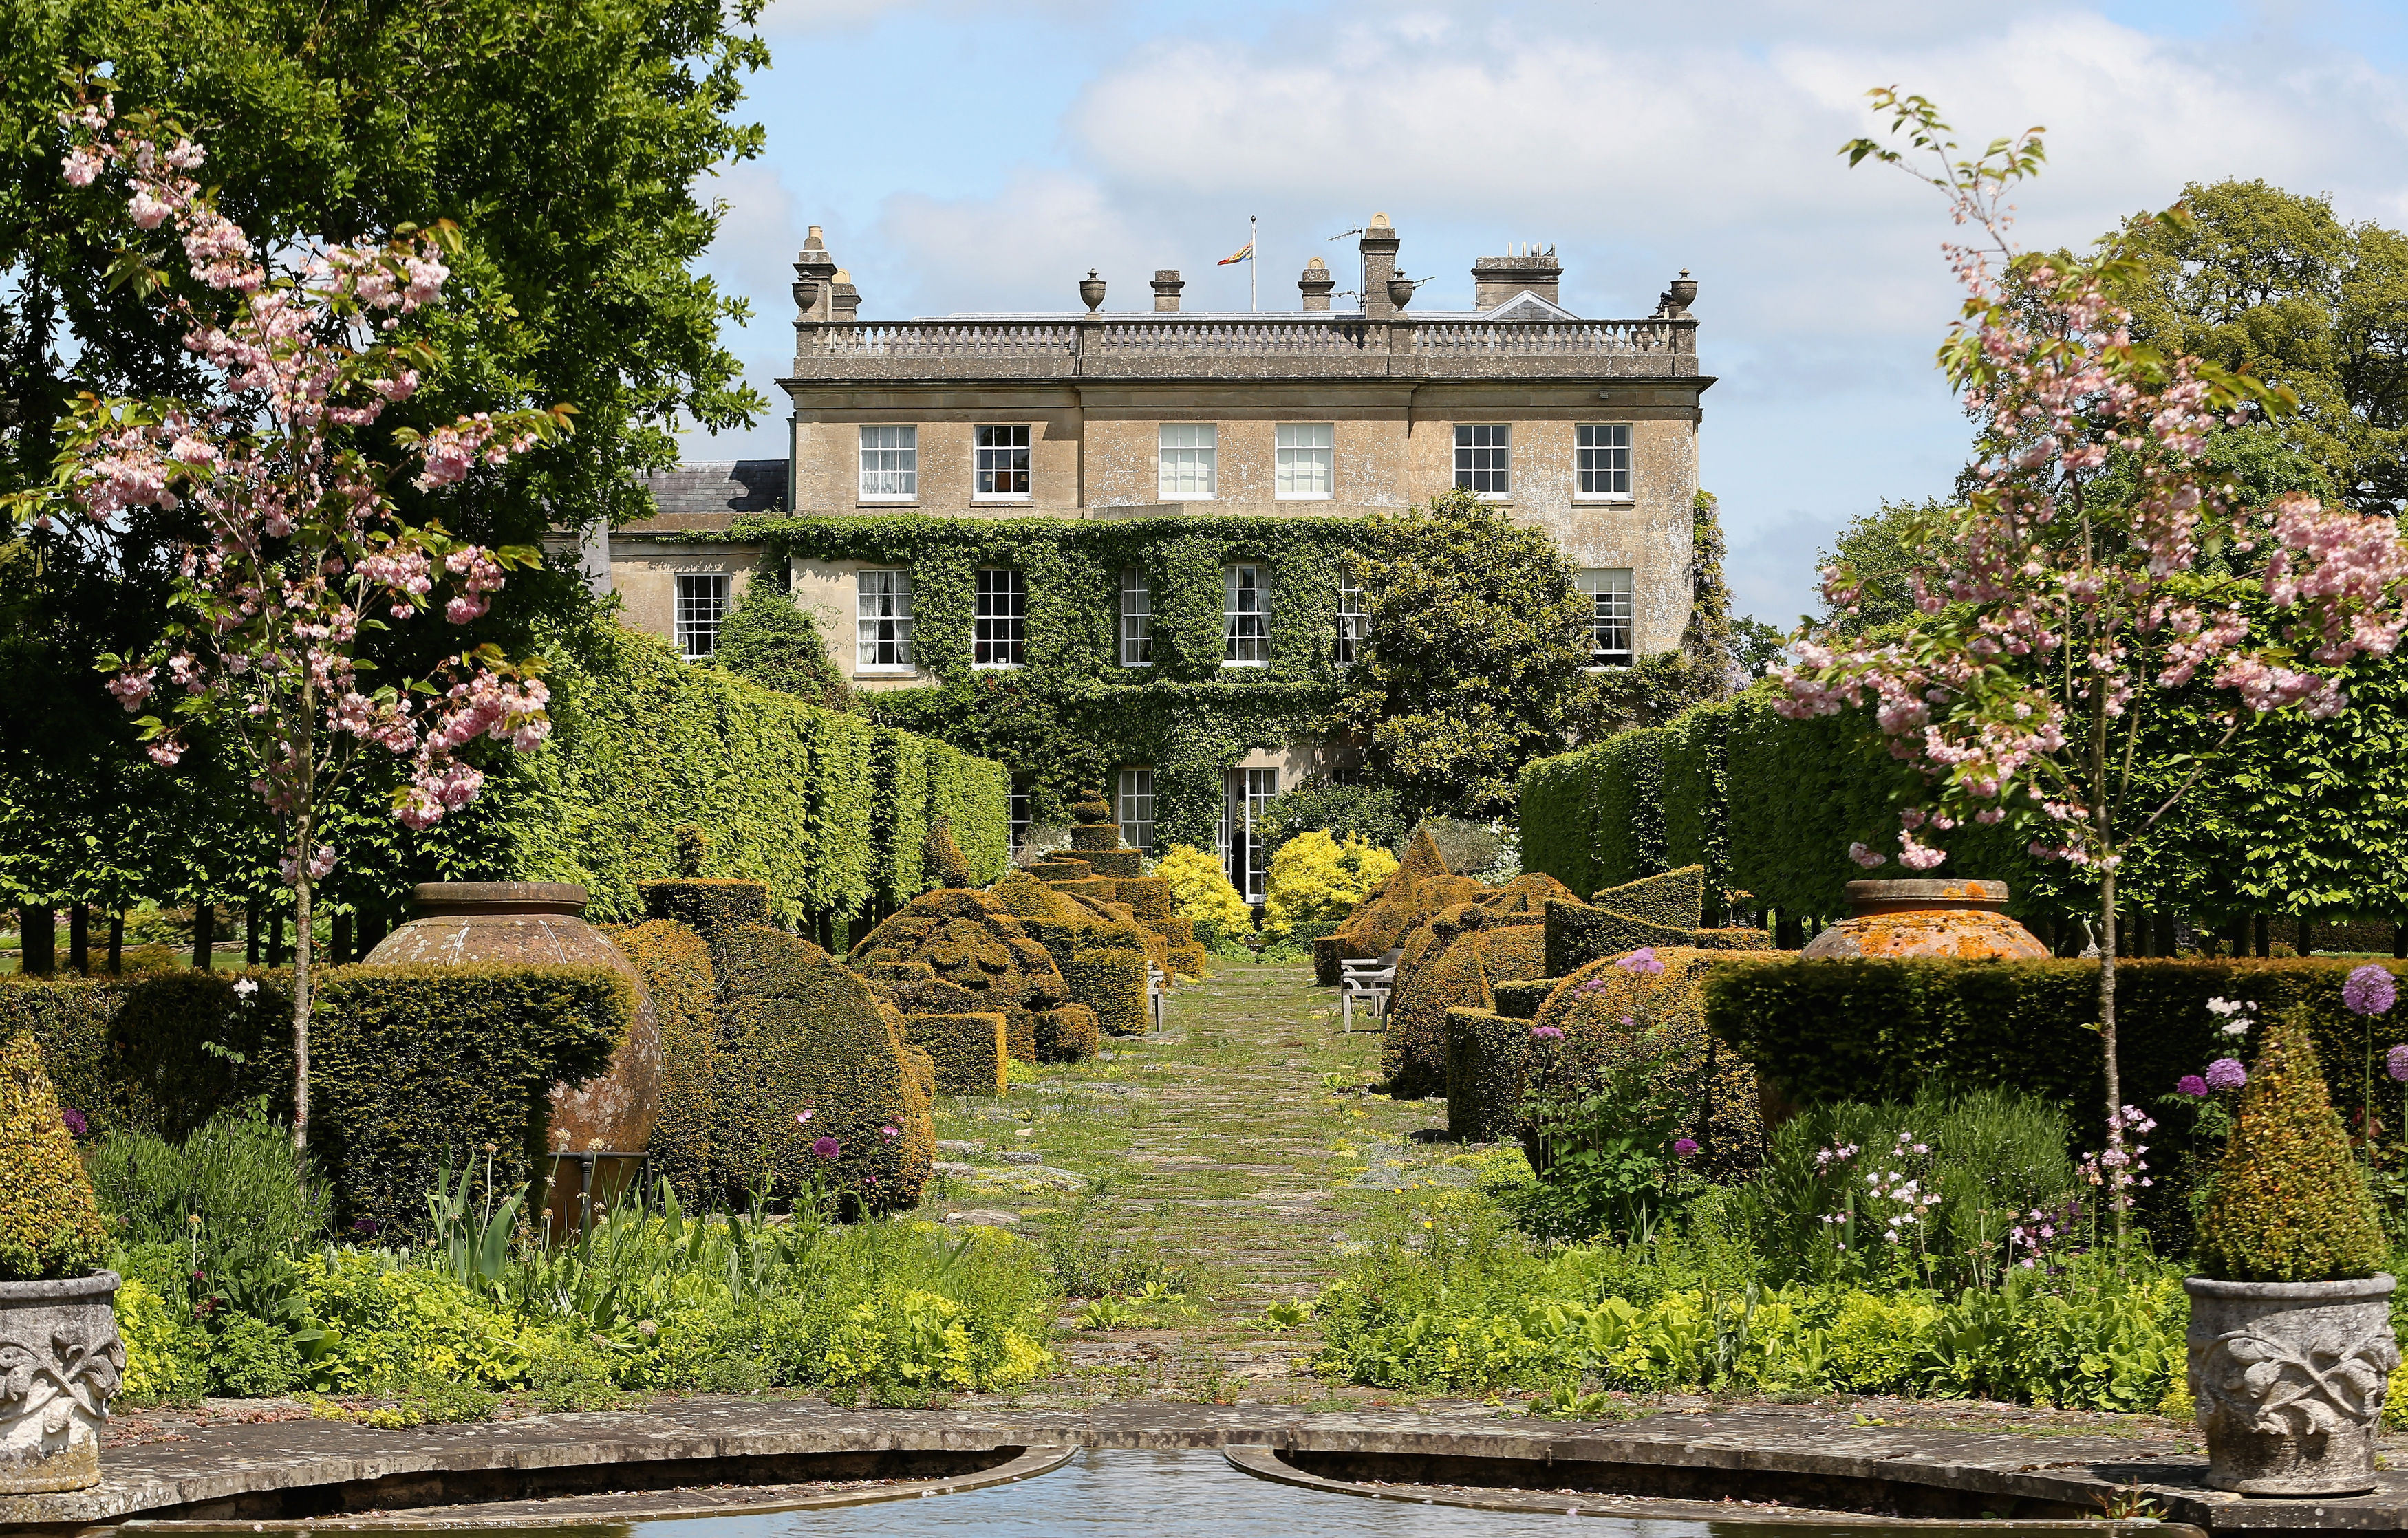 The gardens at Prince Charles' beloved Highgrove House